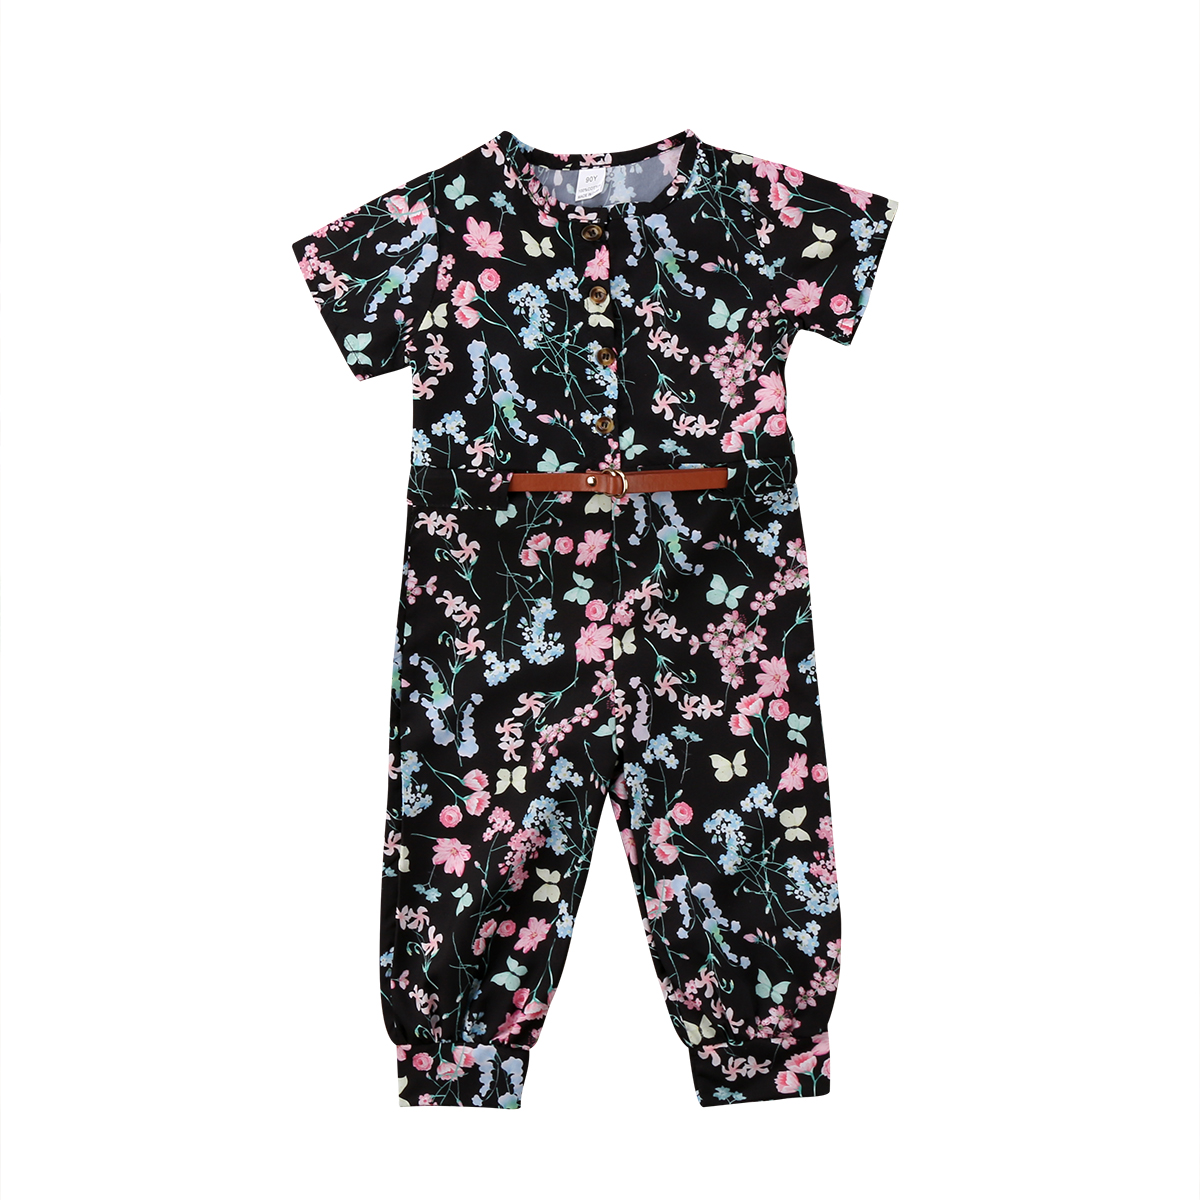 Romper Floral Toddler Kids Baby Sashes Print Button Girl Summer Jumpsuit Playsuit Outfit Clothes Set Rompers